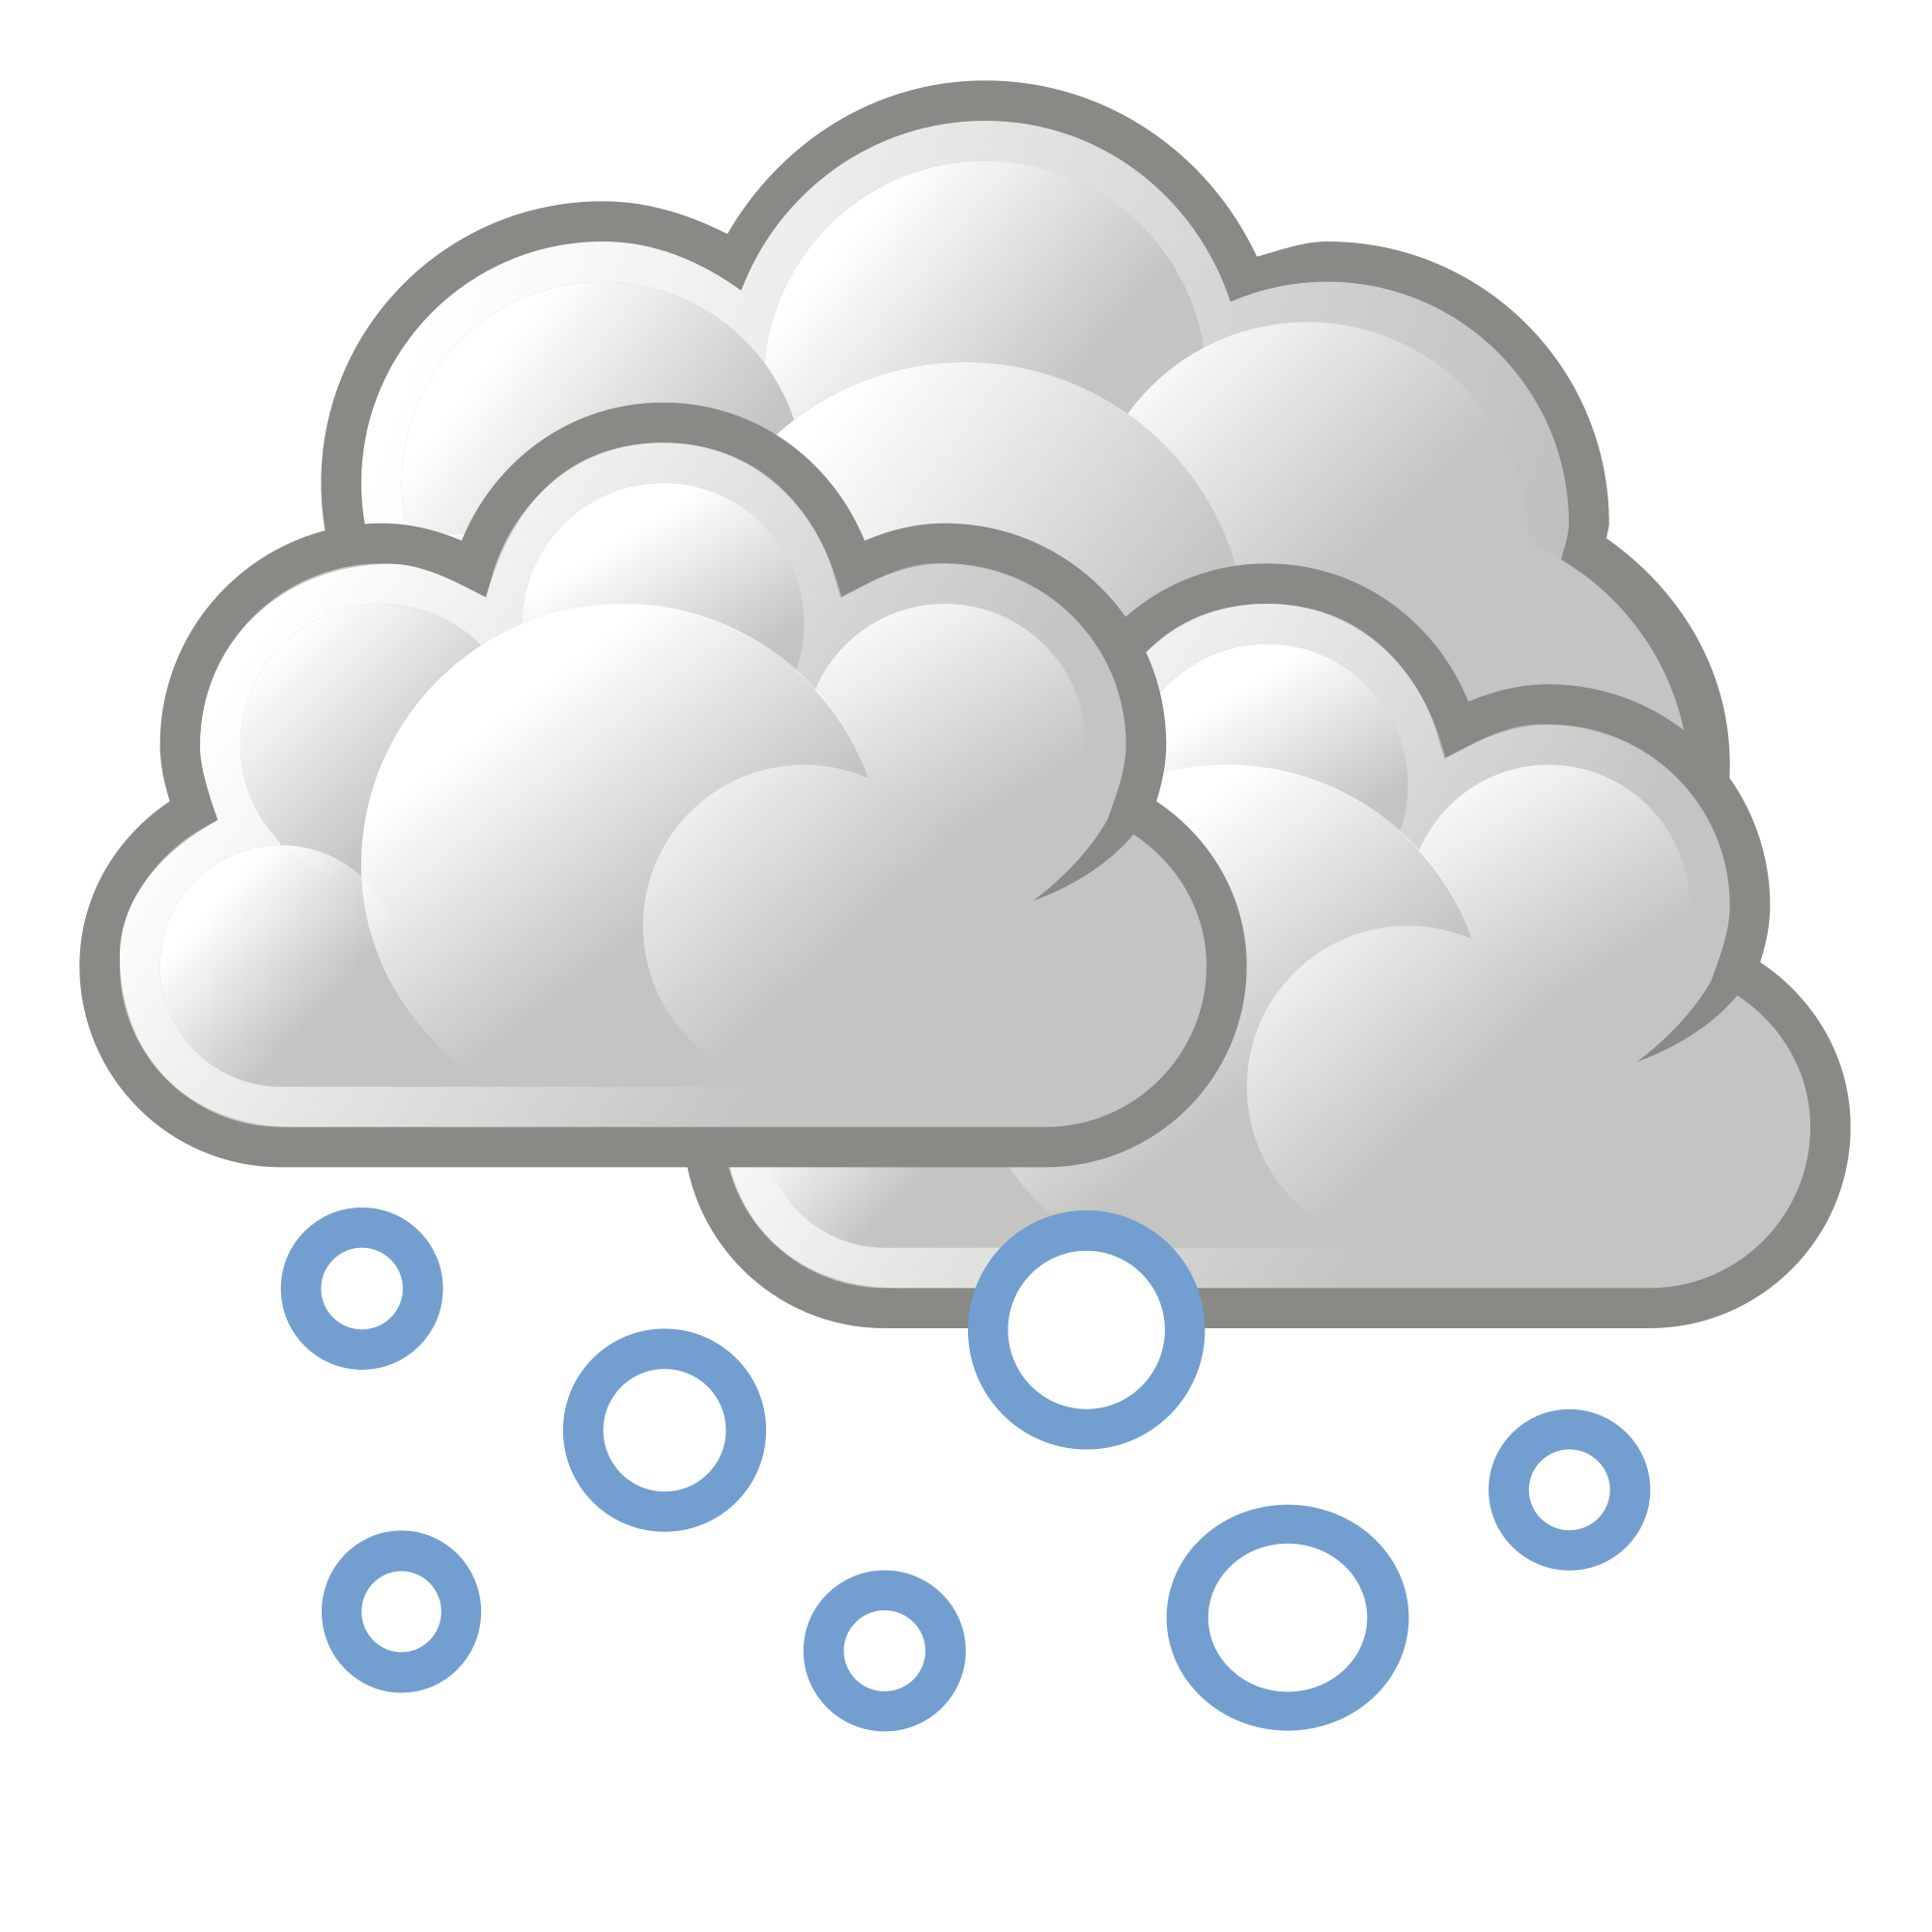 Snow svg weather. File wikimedia commons open